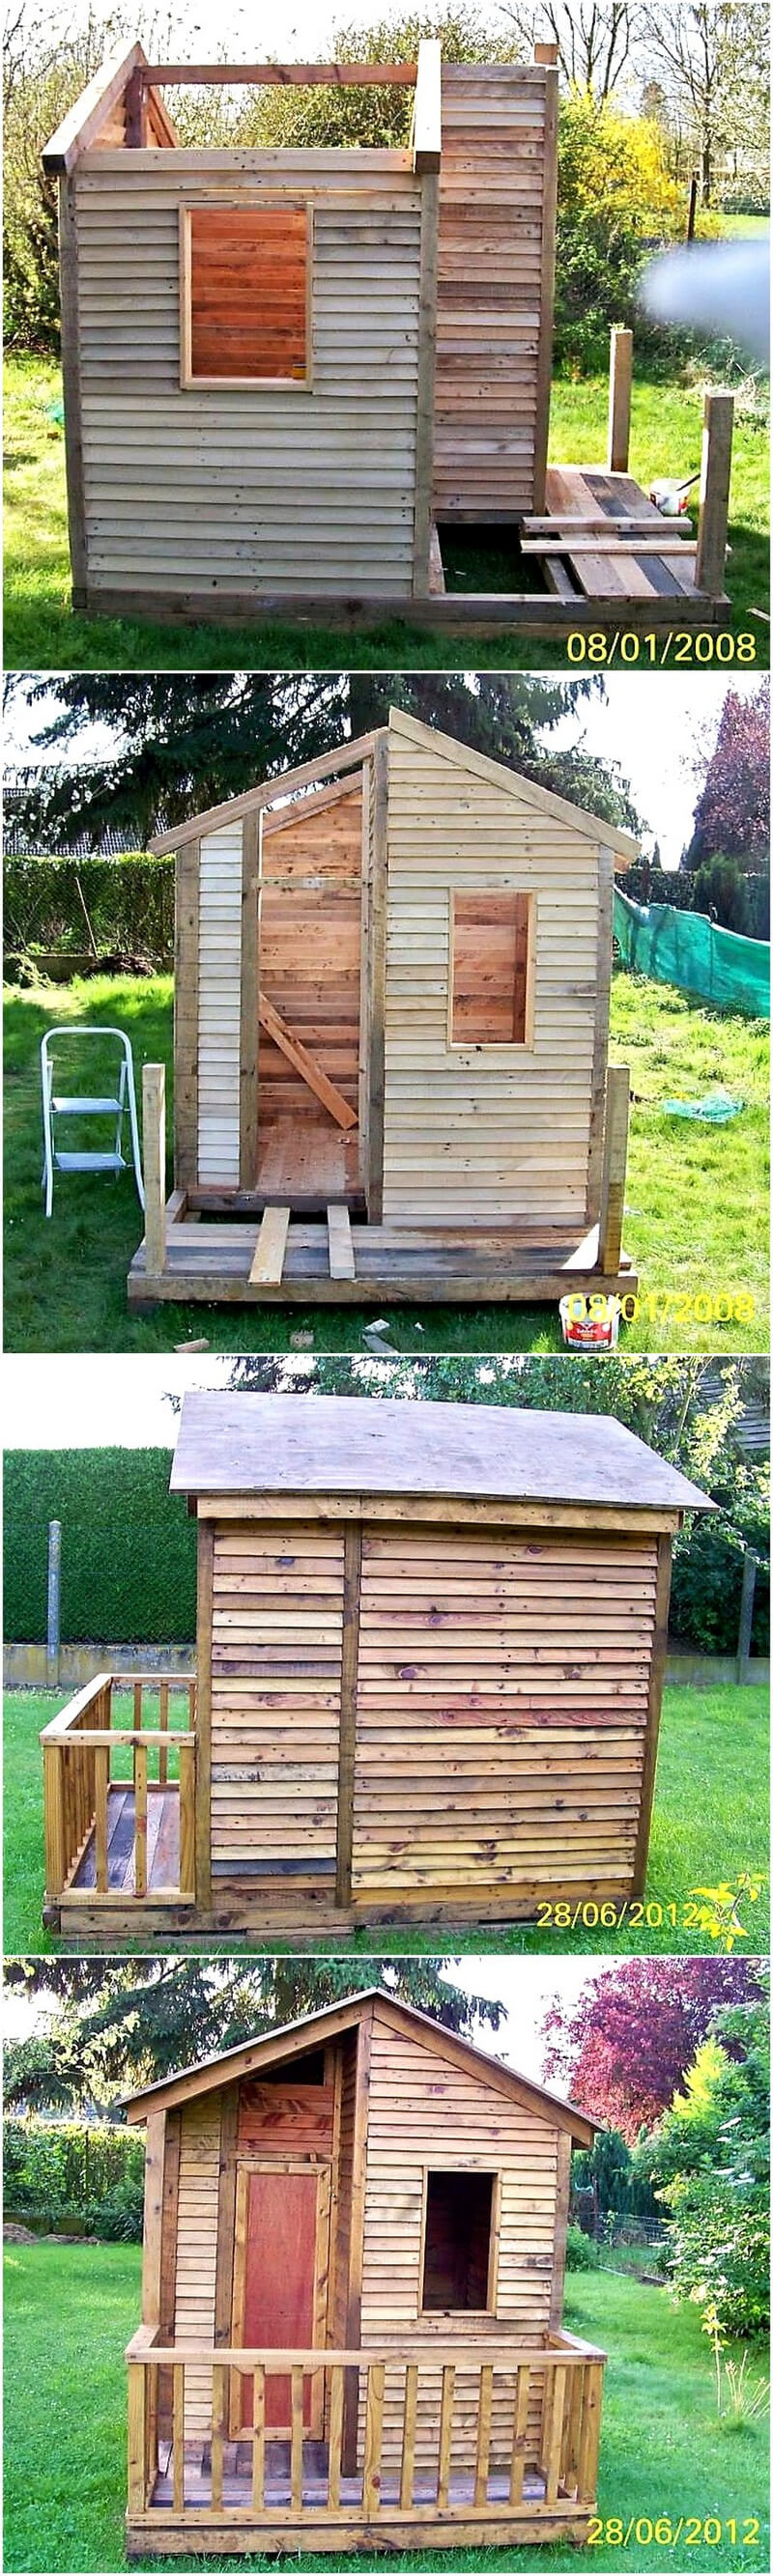 diy wood pallets garden cabin